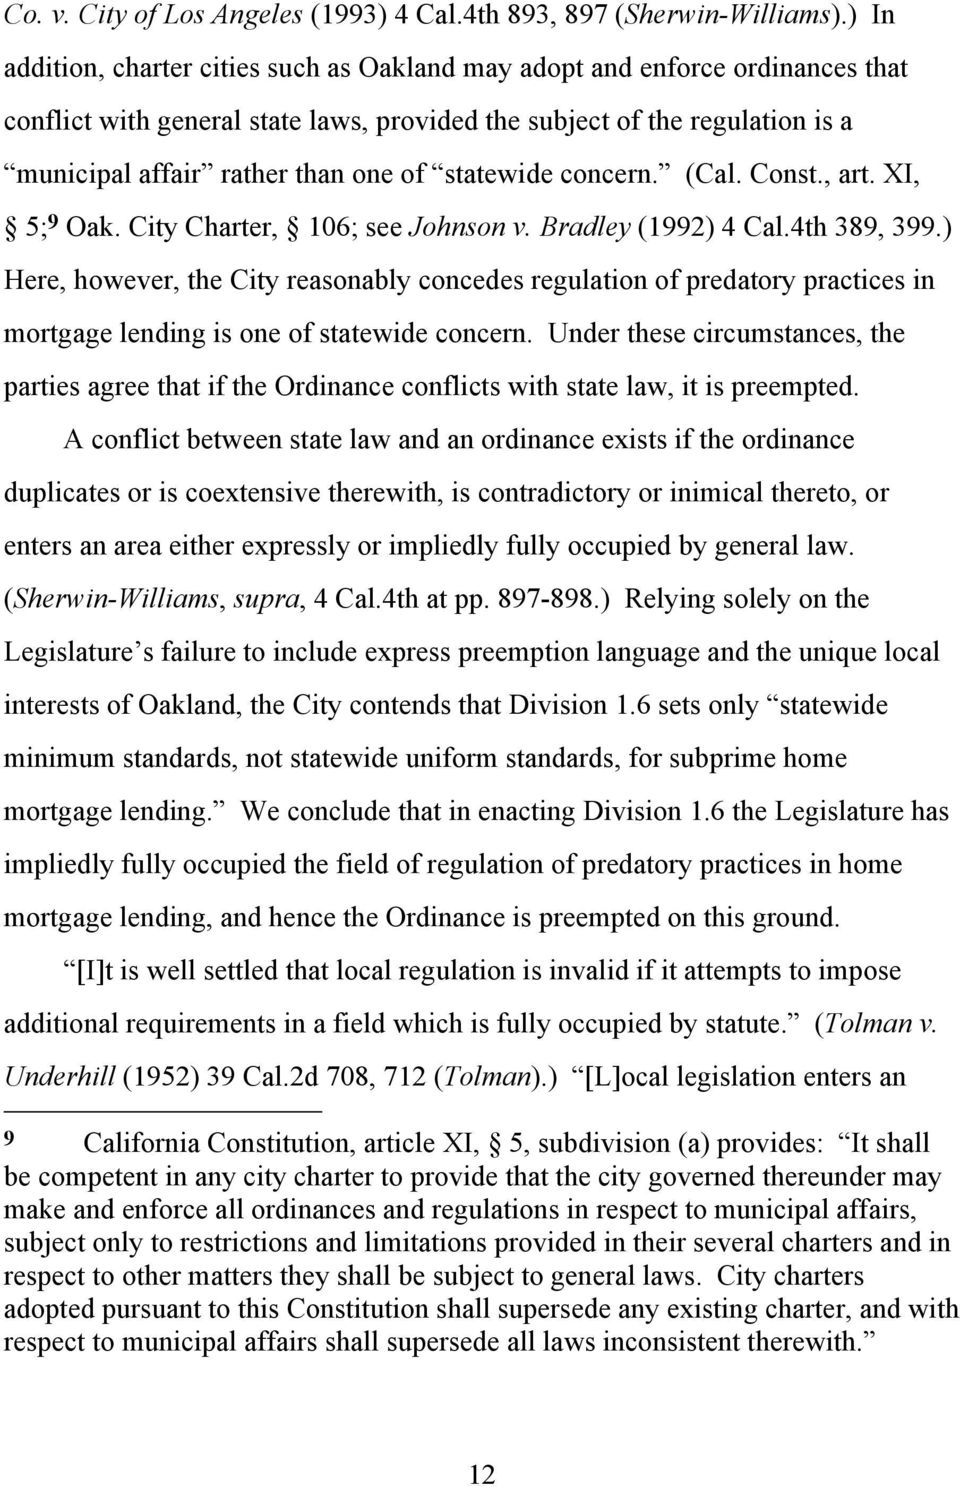 statewide concern. (Cal. Const., art. XI, 5; 9 Oak. City Charter, 106; see Johnson v. Bradley (1992) 4 Cal.4th 389, 399.